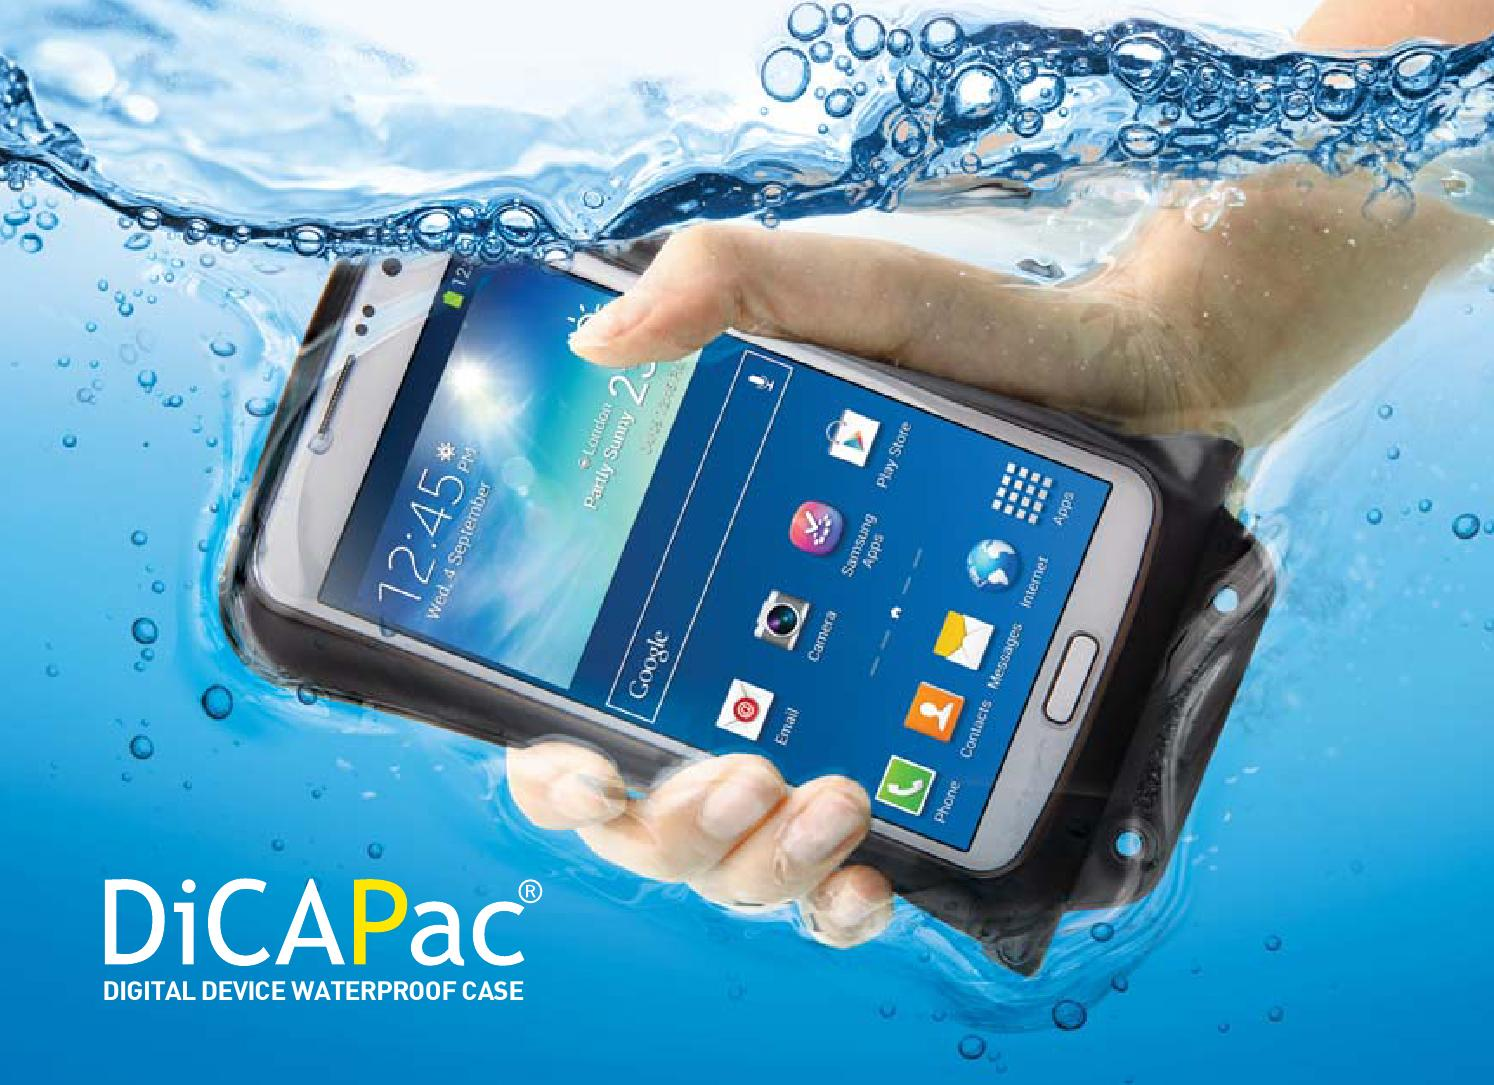 Dicapac Catalog 2015 16 By Reisemood Issuu Wp S10 Waterproof Case For Slr Dslr Cameras